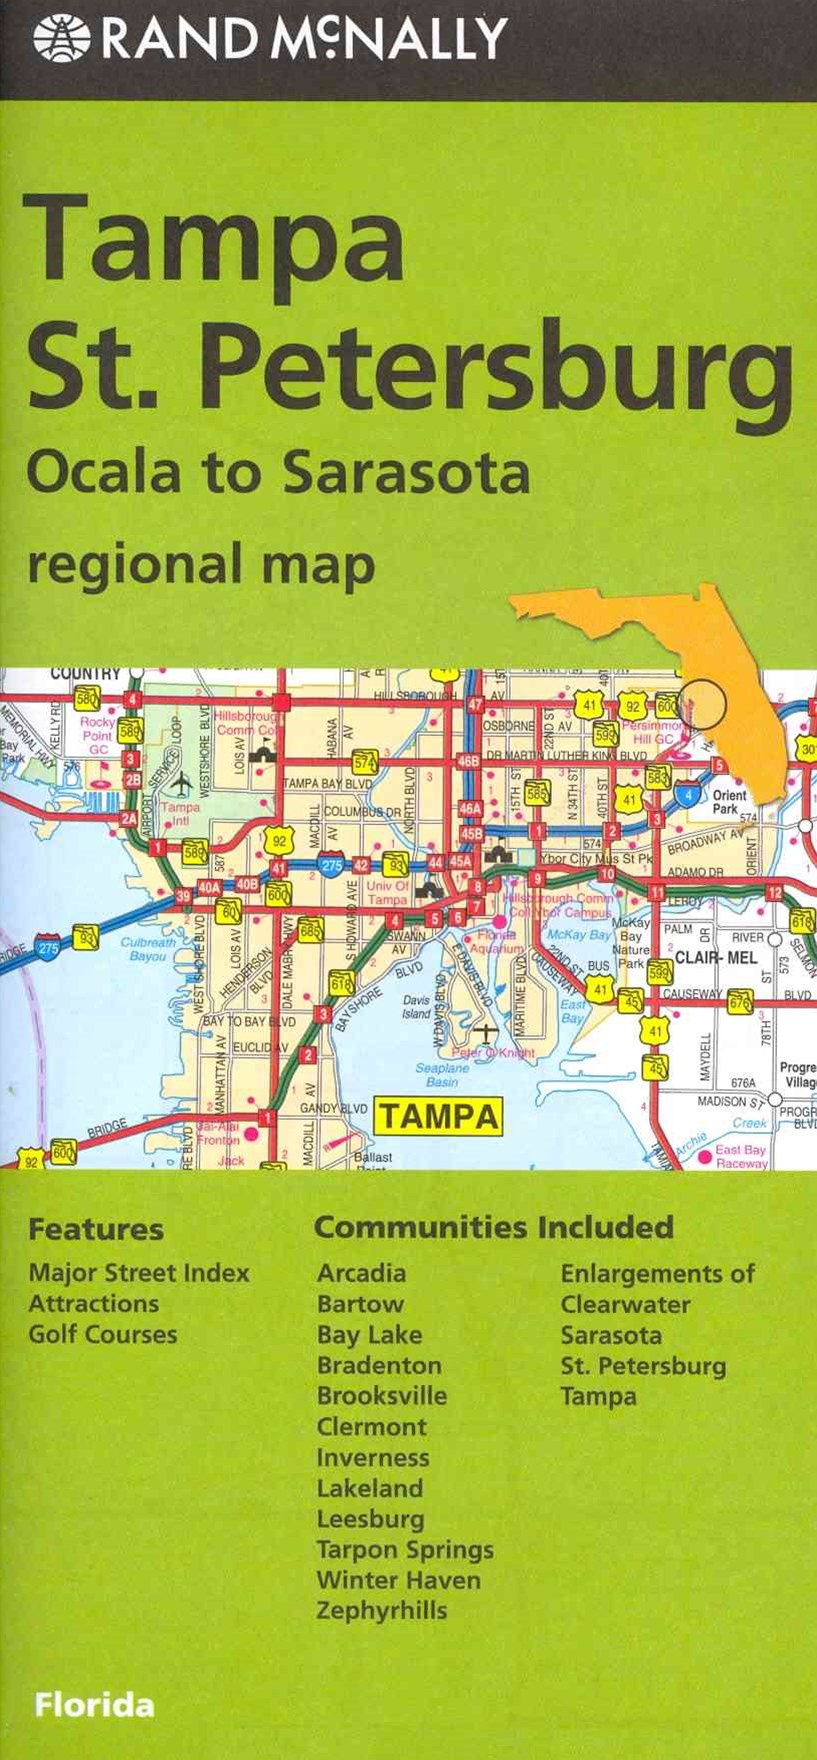 Rand McNally Tampa/St. Petersburg Regional Map